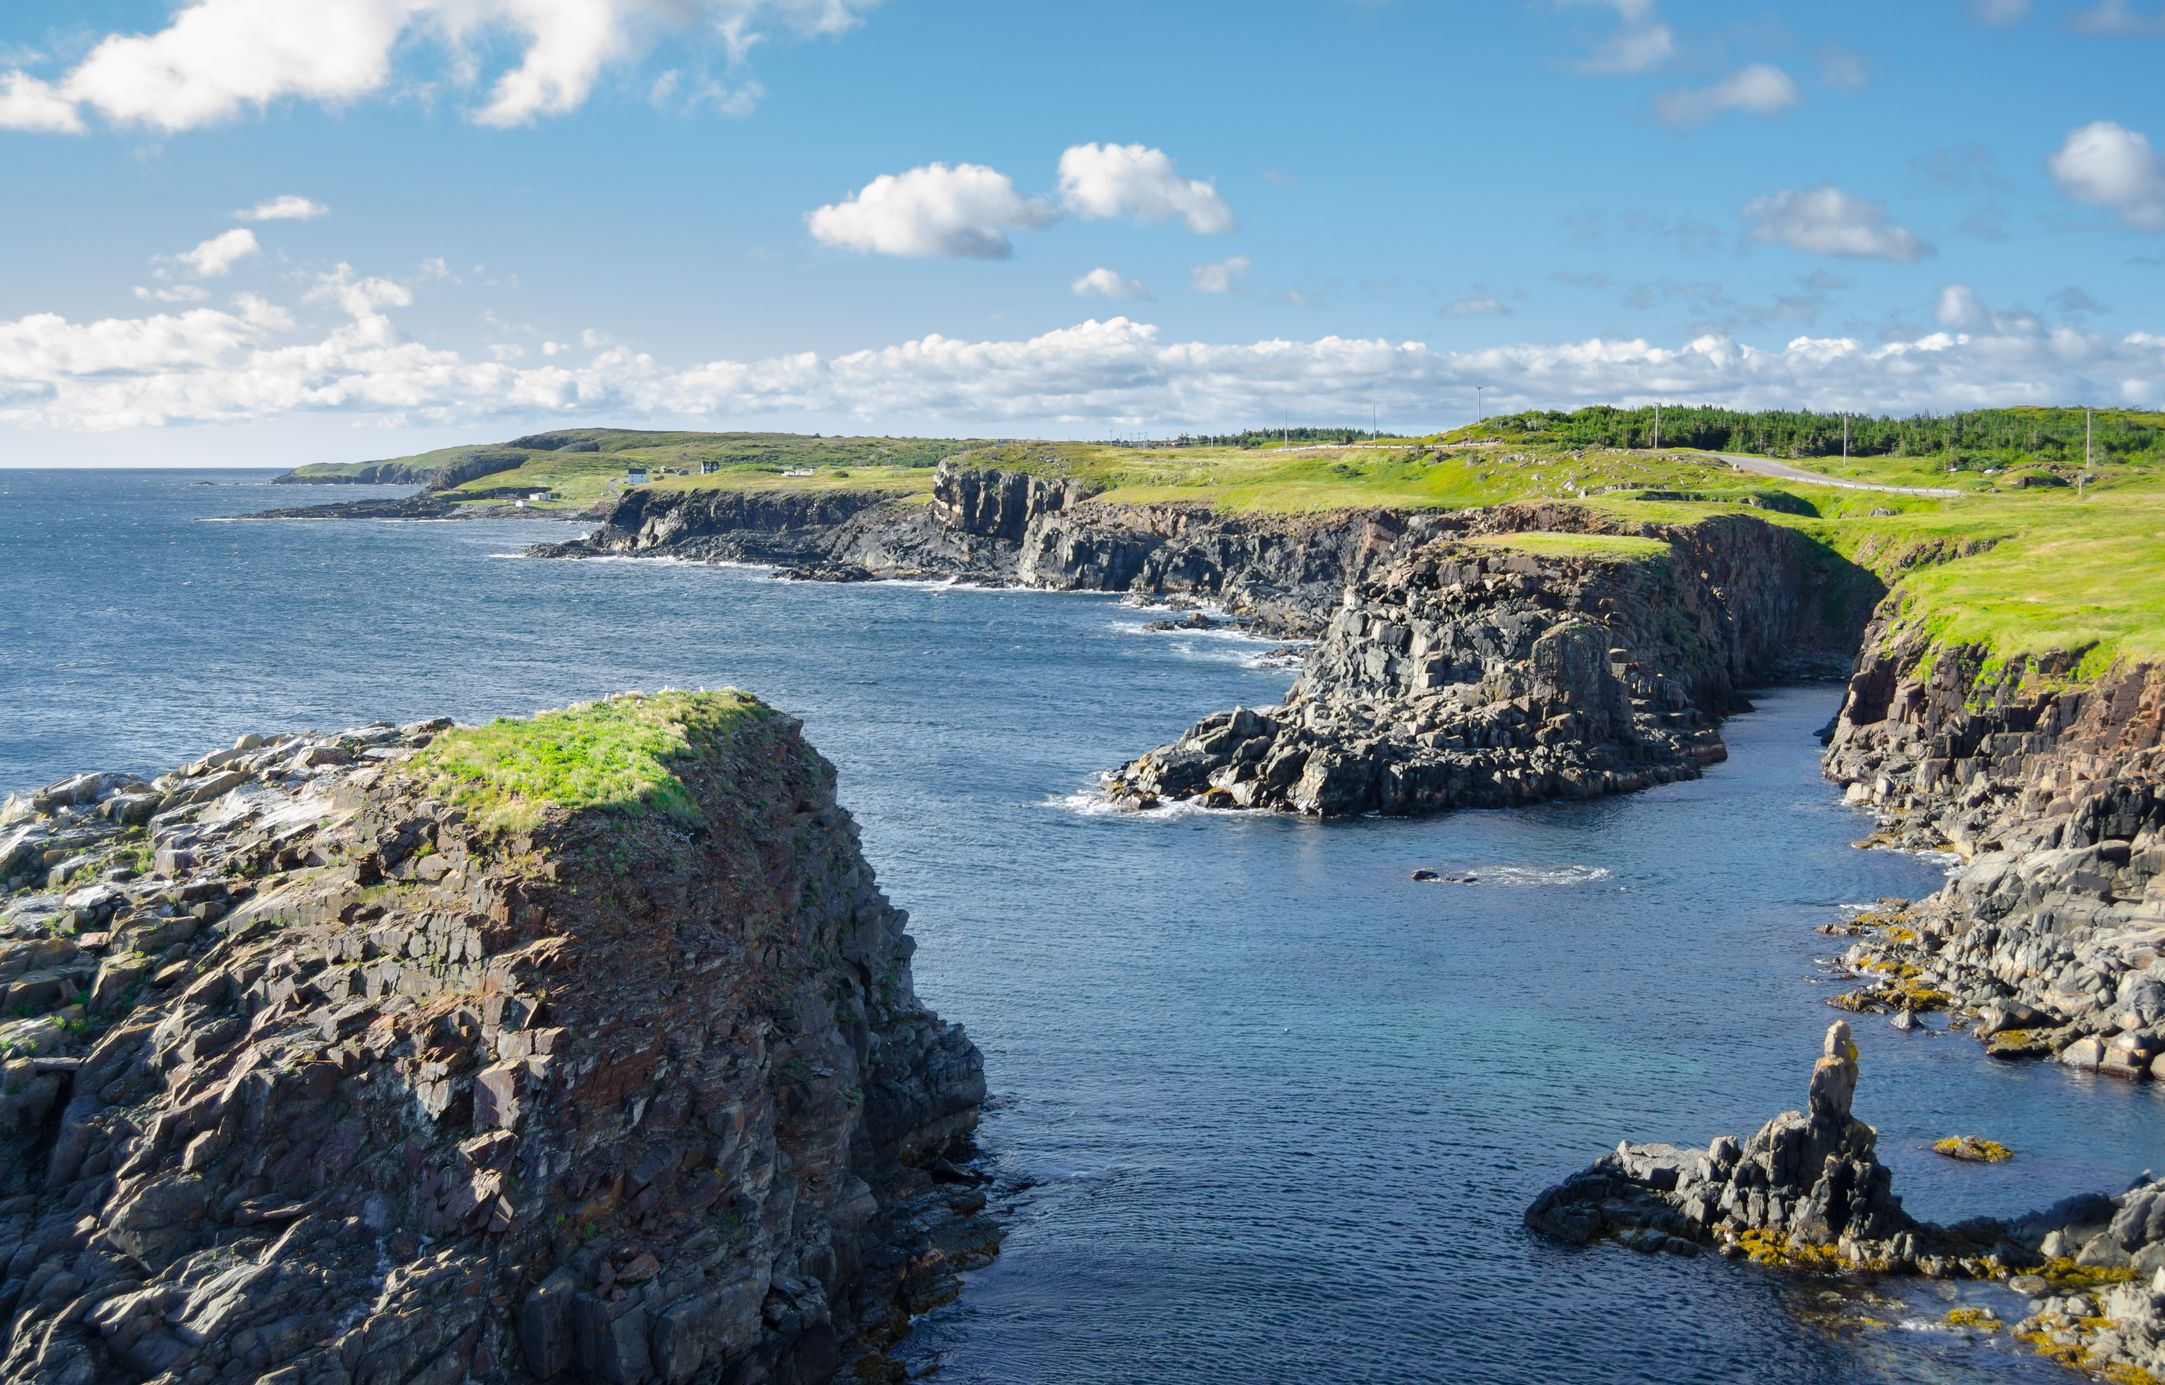 The Bonavista coastline, one of the places Deveraux visited. Photo: Getty Images